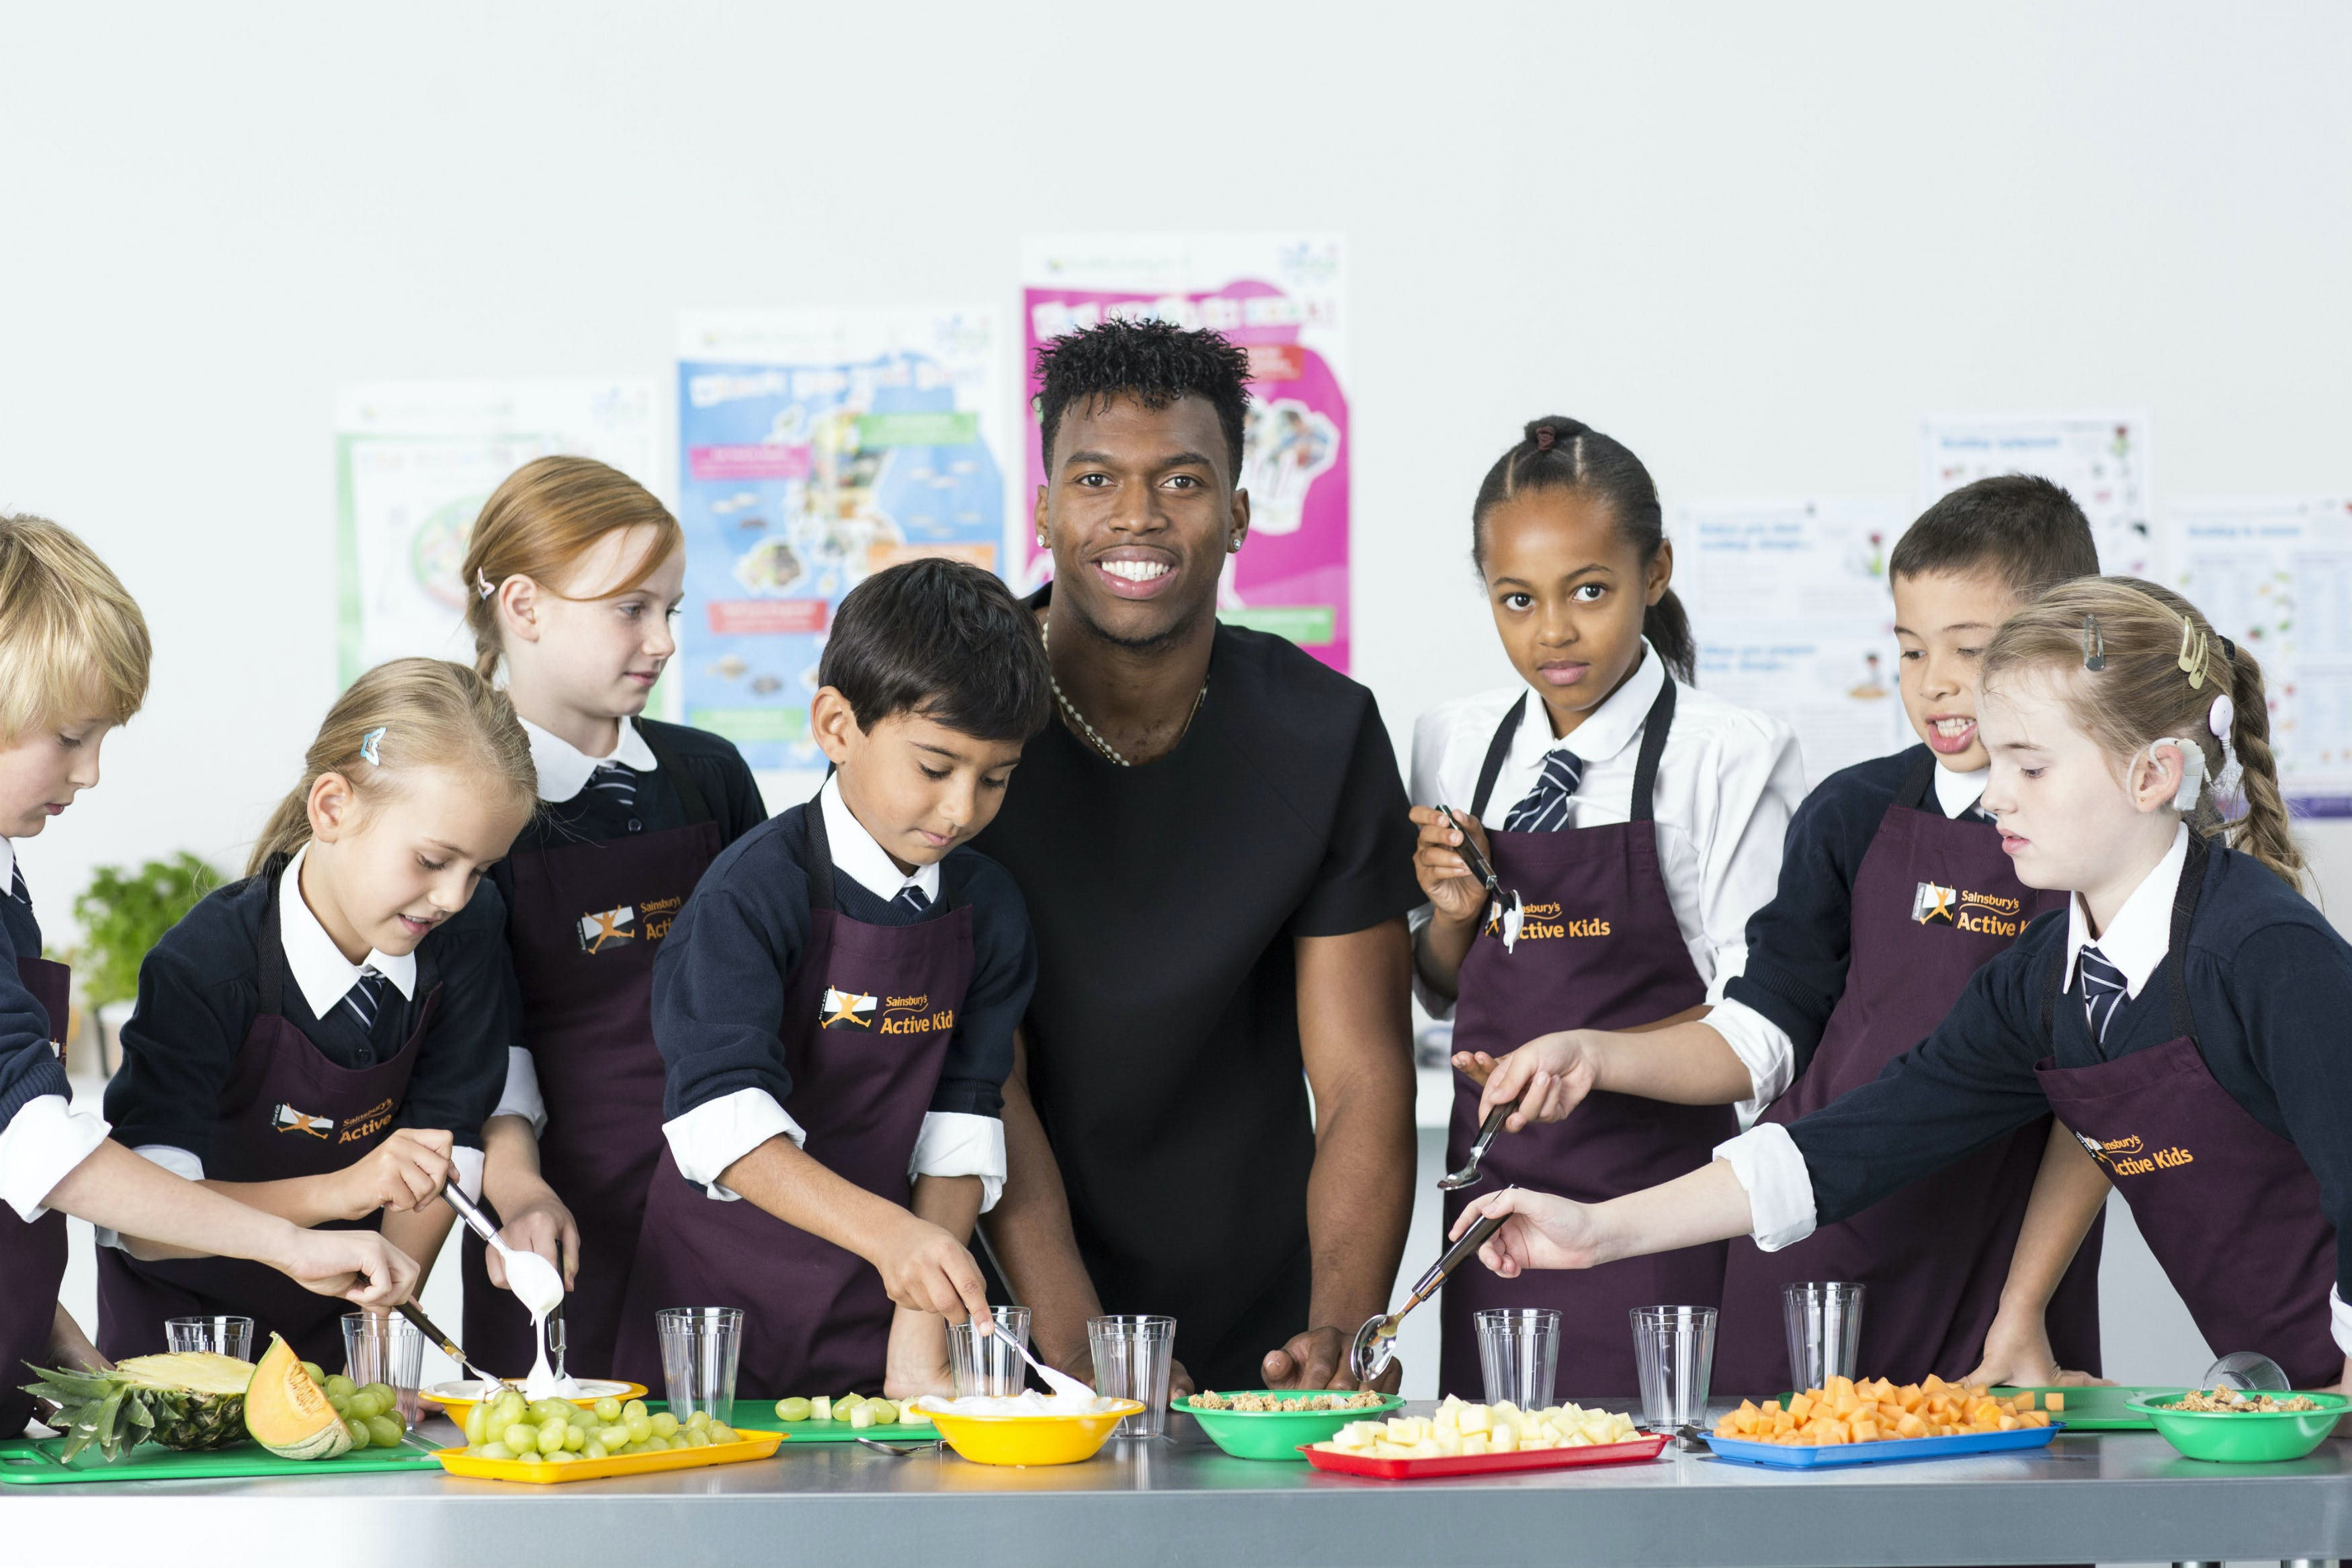 Liverpool striker Daniel Sturridge will front Sainsbury's 'Active Kids' campaign next year.